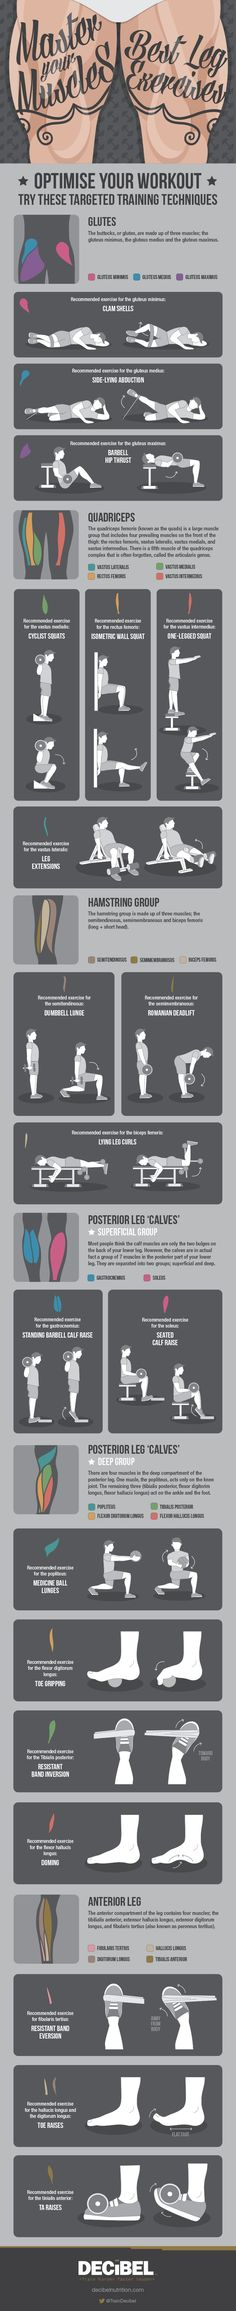 Master Your Muscles: Best Leg Exercises #infographic